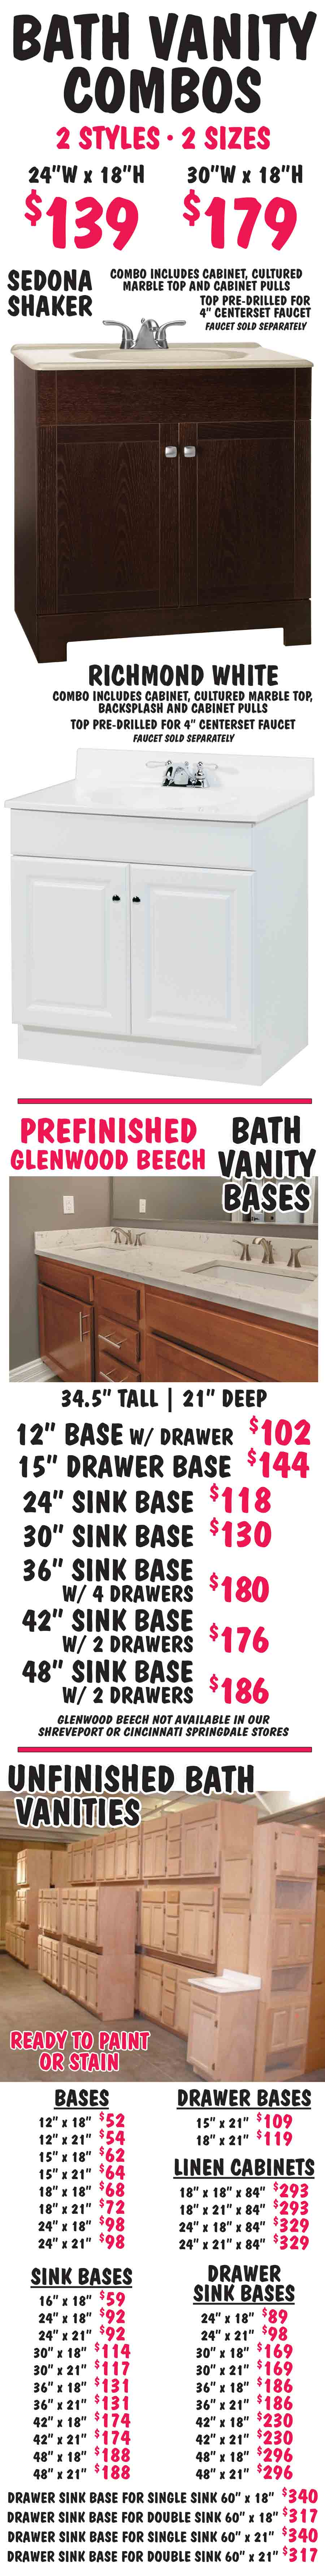 Bath Vanities Combos Prefinished Unfinished